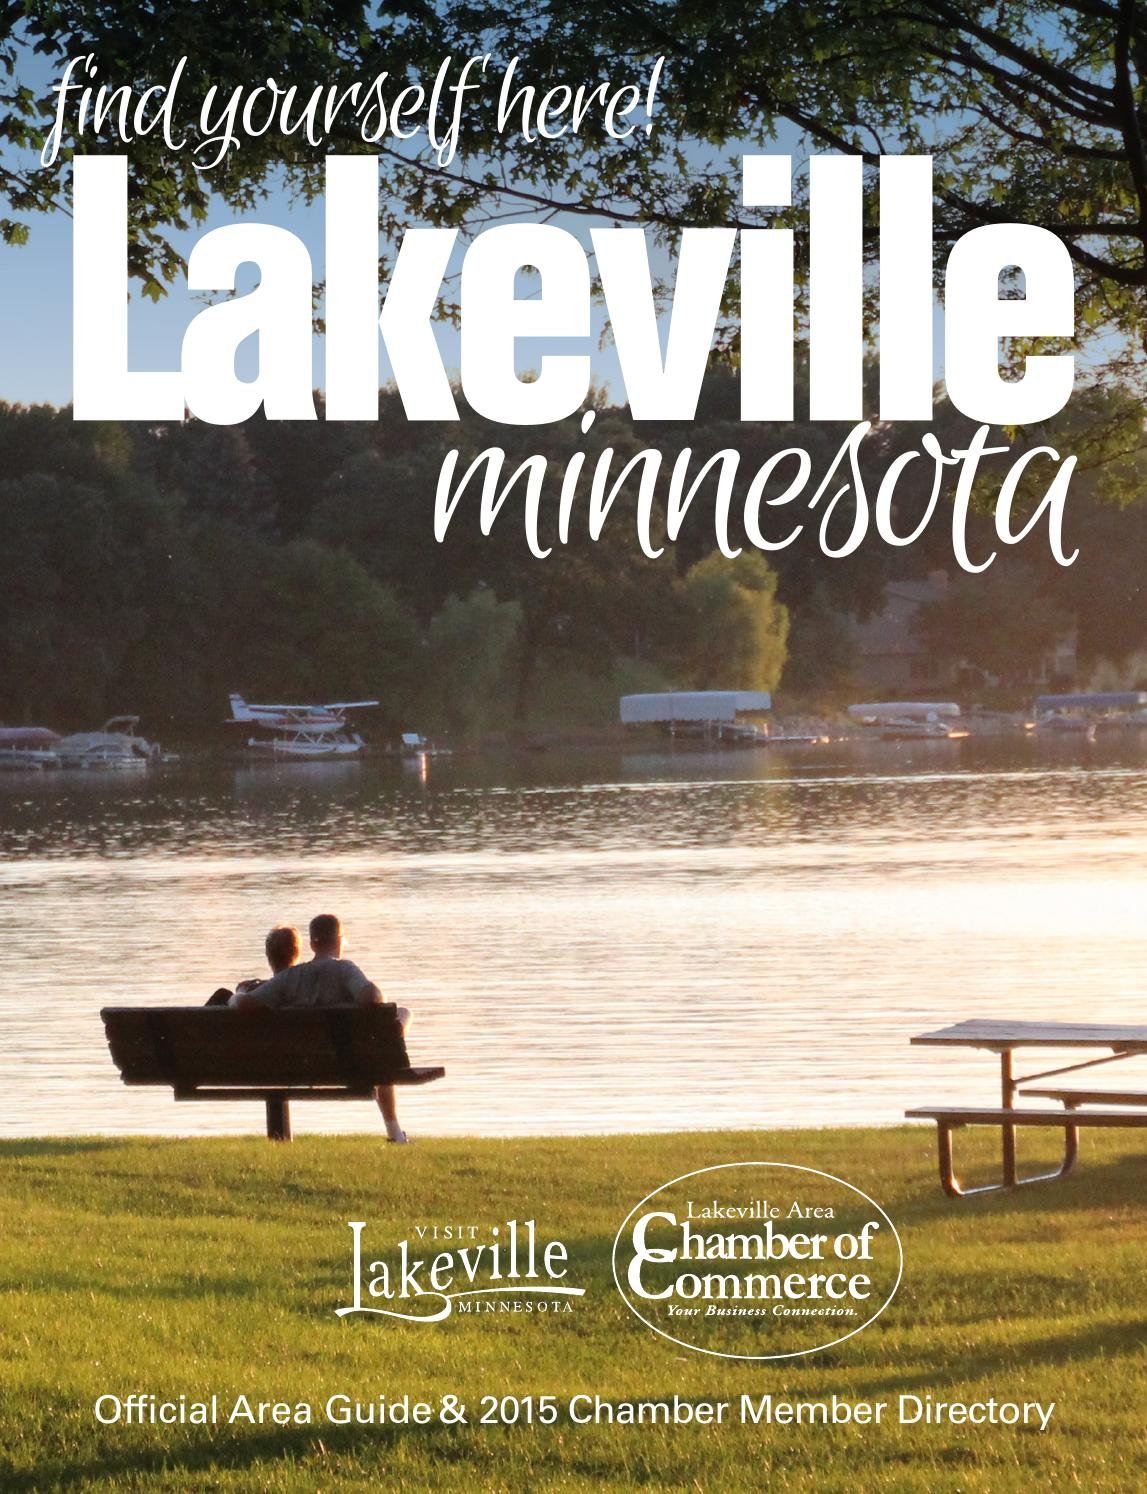 Lakeville Official Area Guide & 2015 Chamber Member